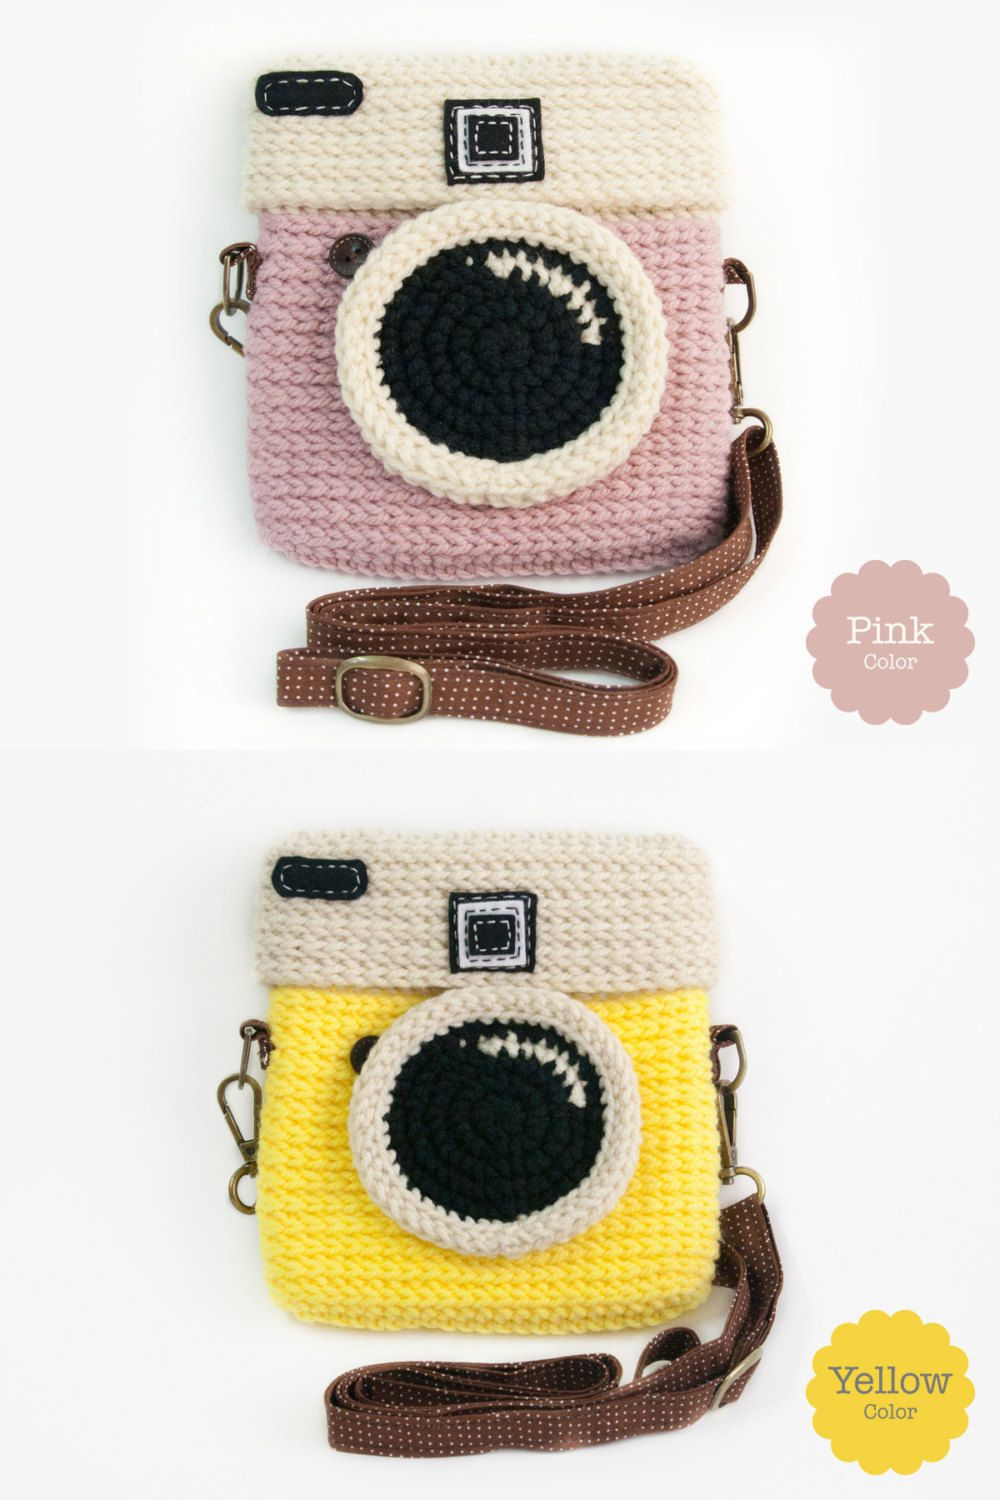 Crochet Lomo Camera Purse/ Pastel Mint Color #camerapurse